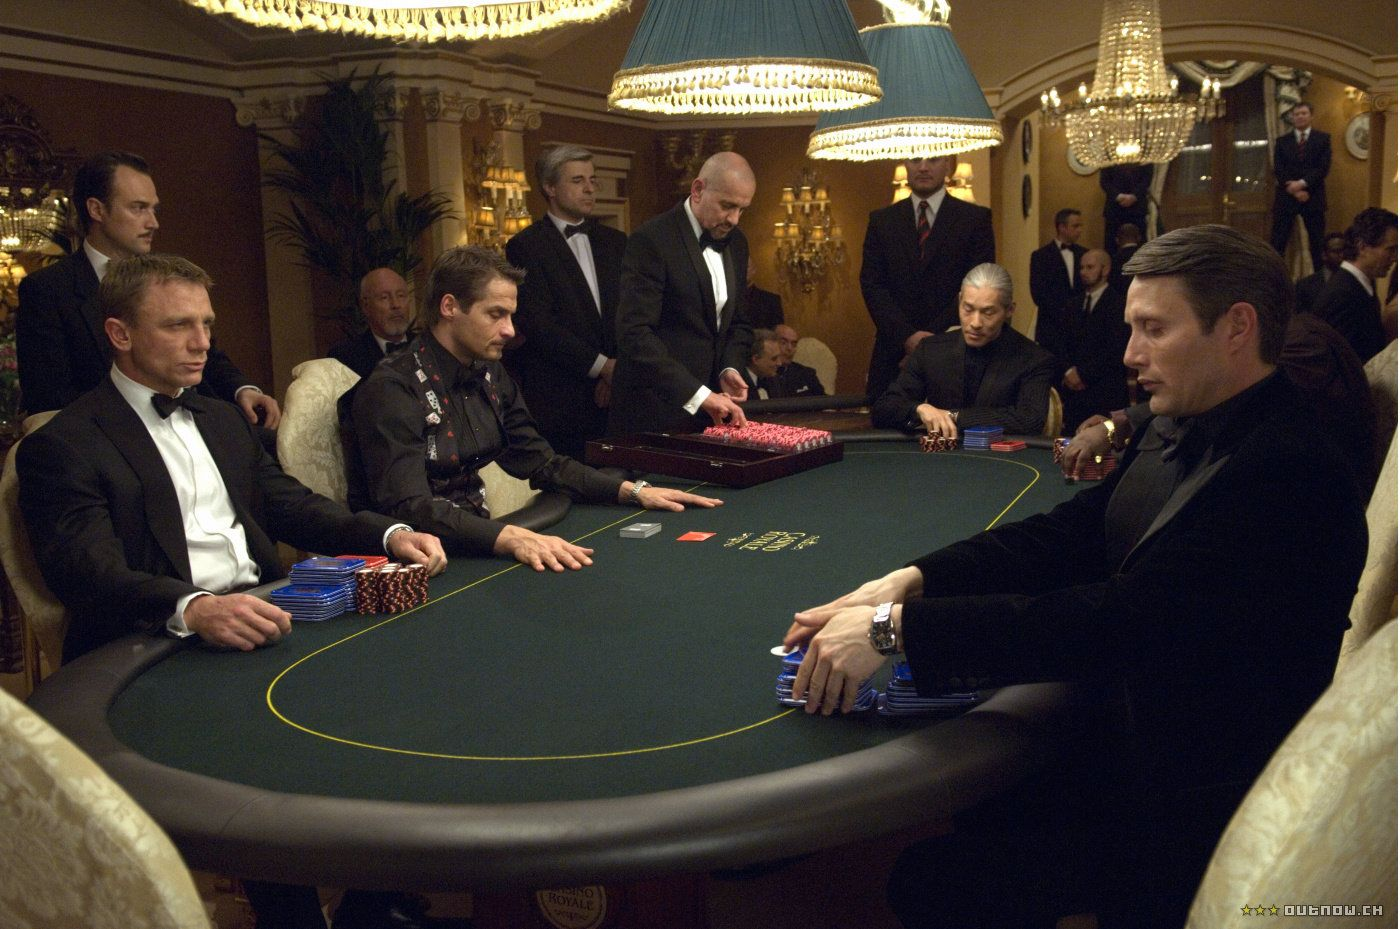 A scene from James Bond: Casino Royale